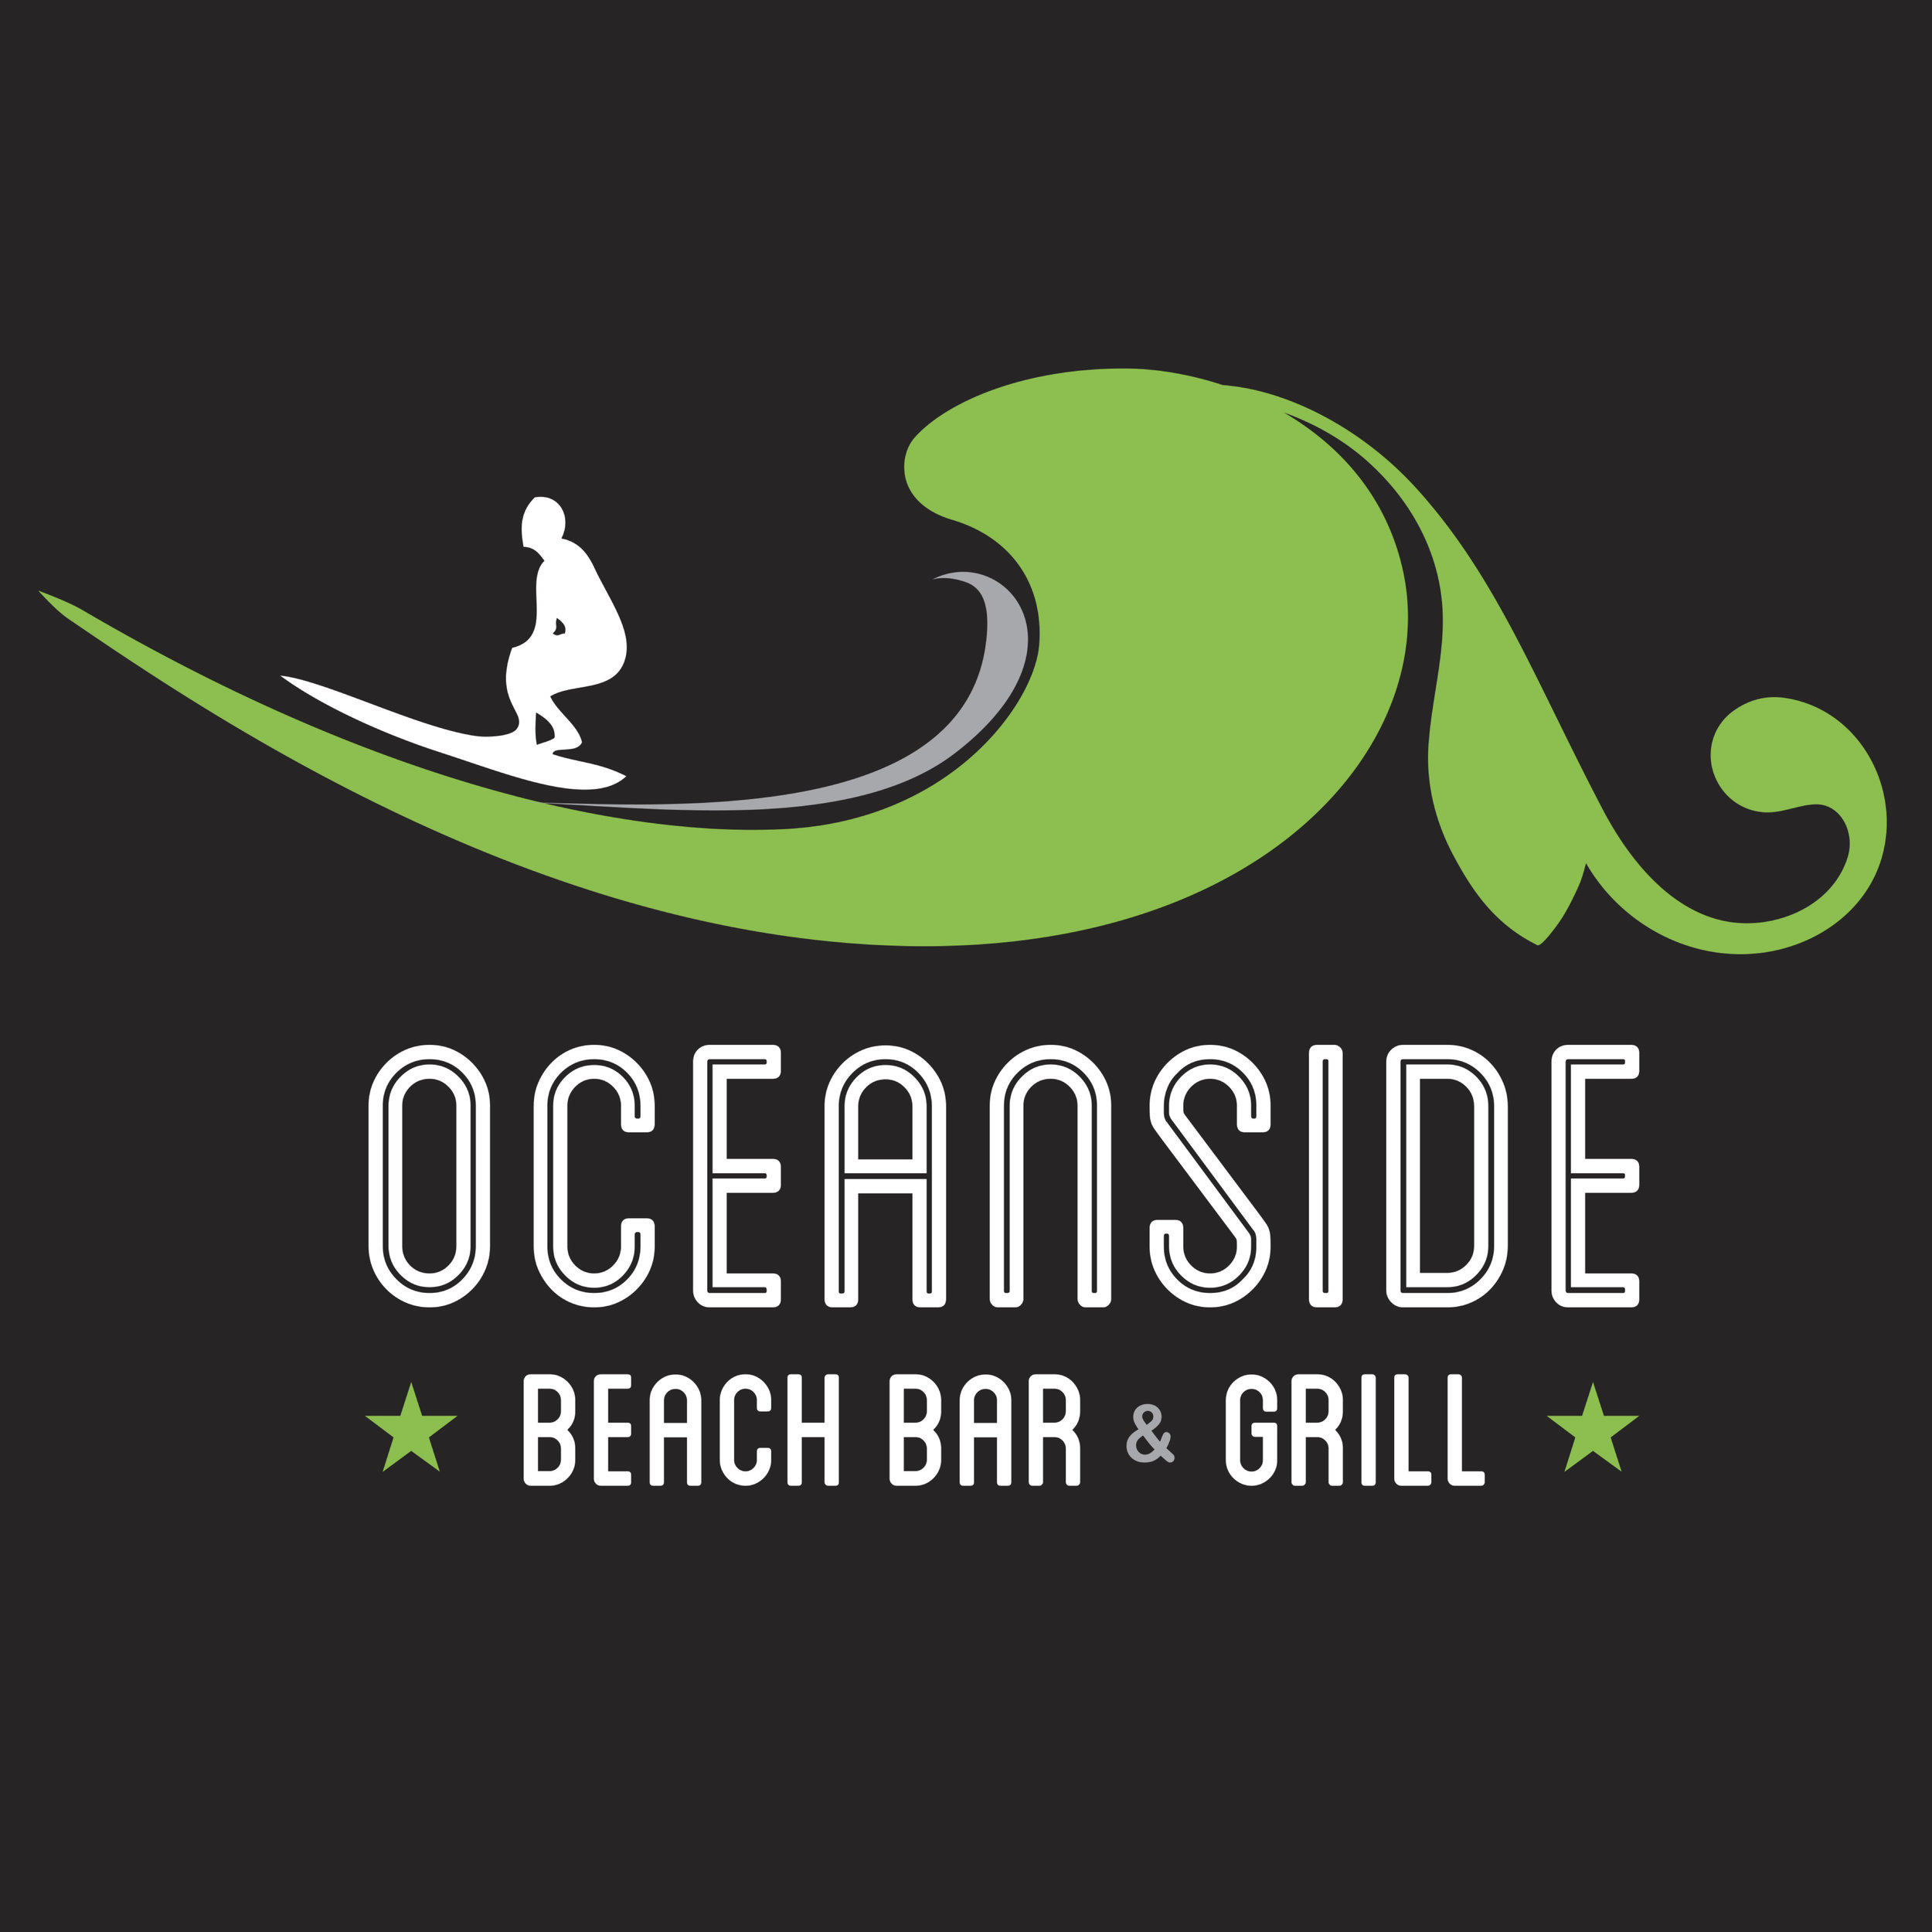 Saturday June 22, 2019 - Oceanside Beach Bar & GrillTime: 7pm